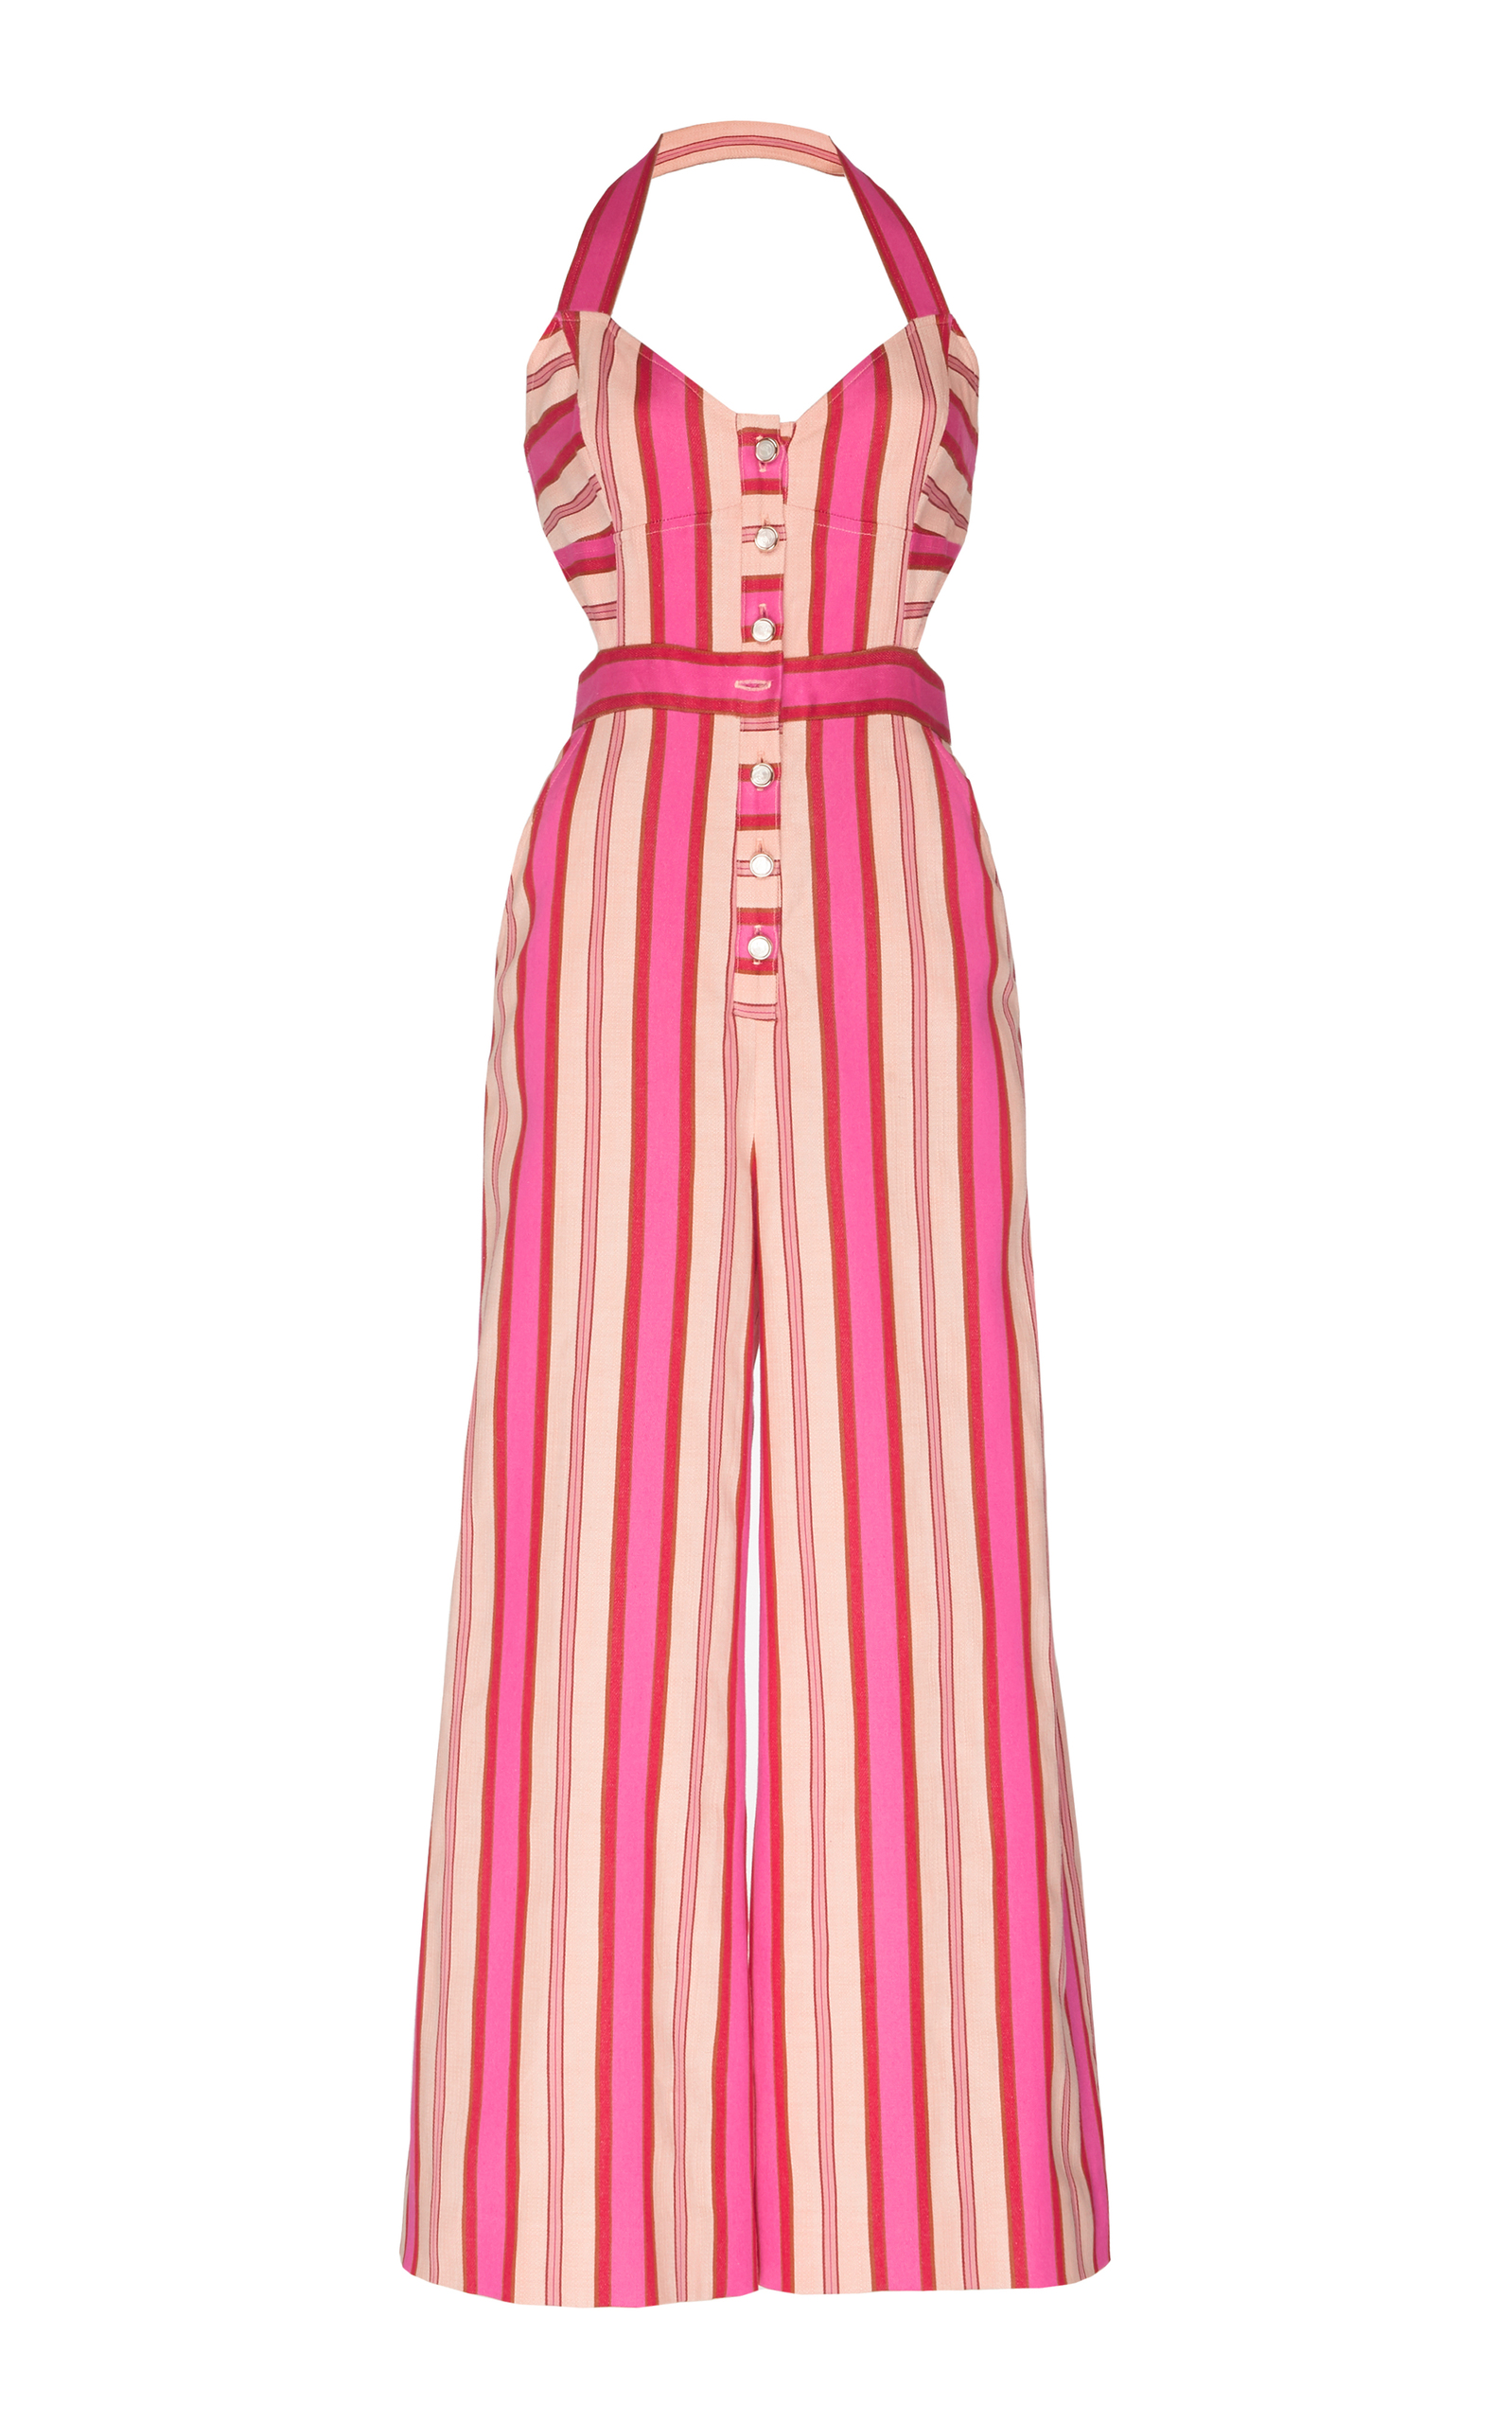 Robe De Pin Arbre - Rose Et Violet Temperley London PbsKnzsva